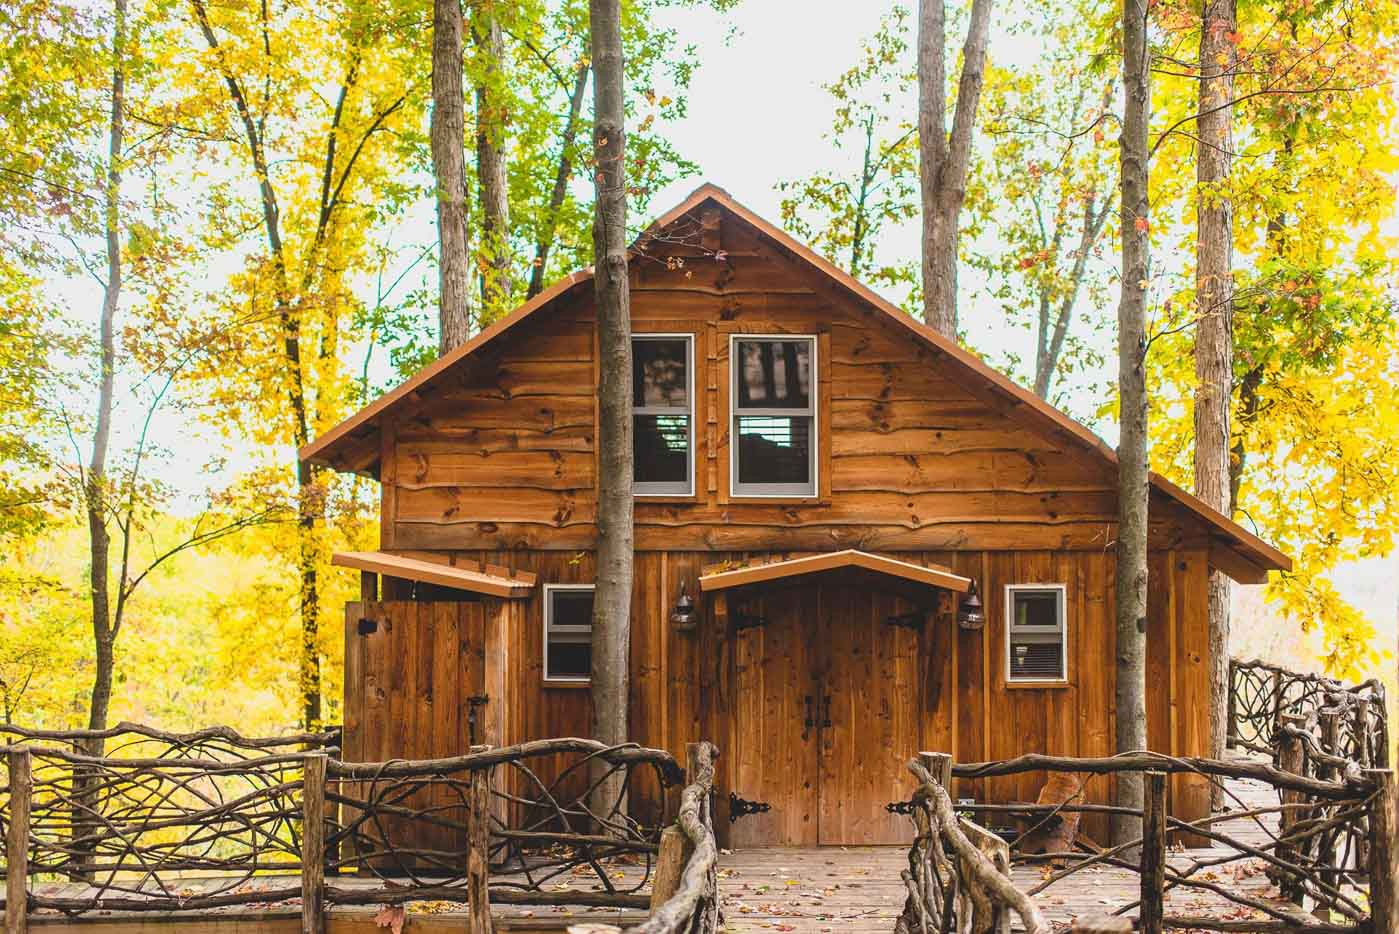 this top ohio flipkey blog explore the smoky families nature or rental rentals perfect to is cabins looking small cabin for in forest couples enchanting lovers hikers romantic